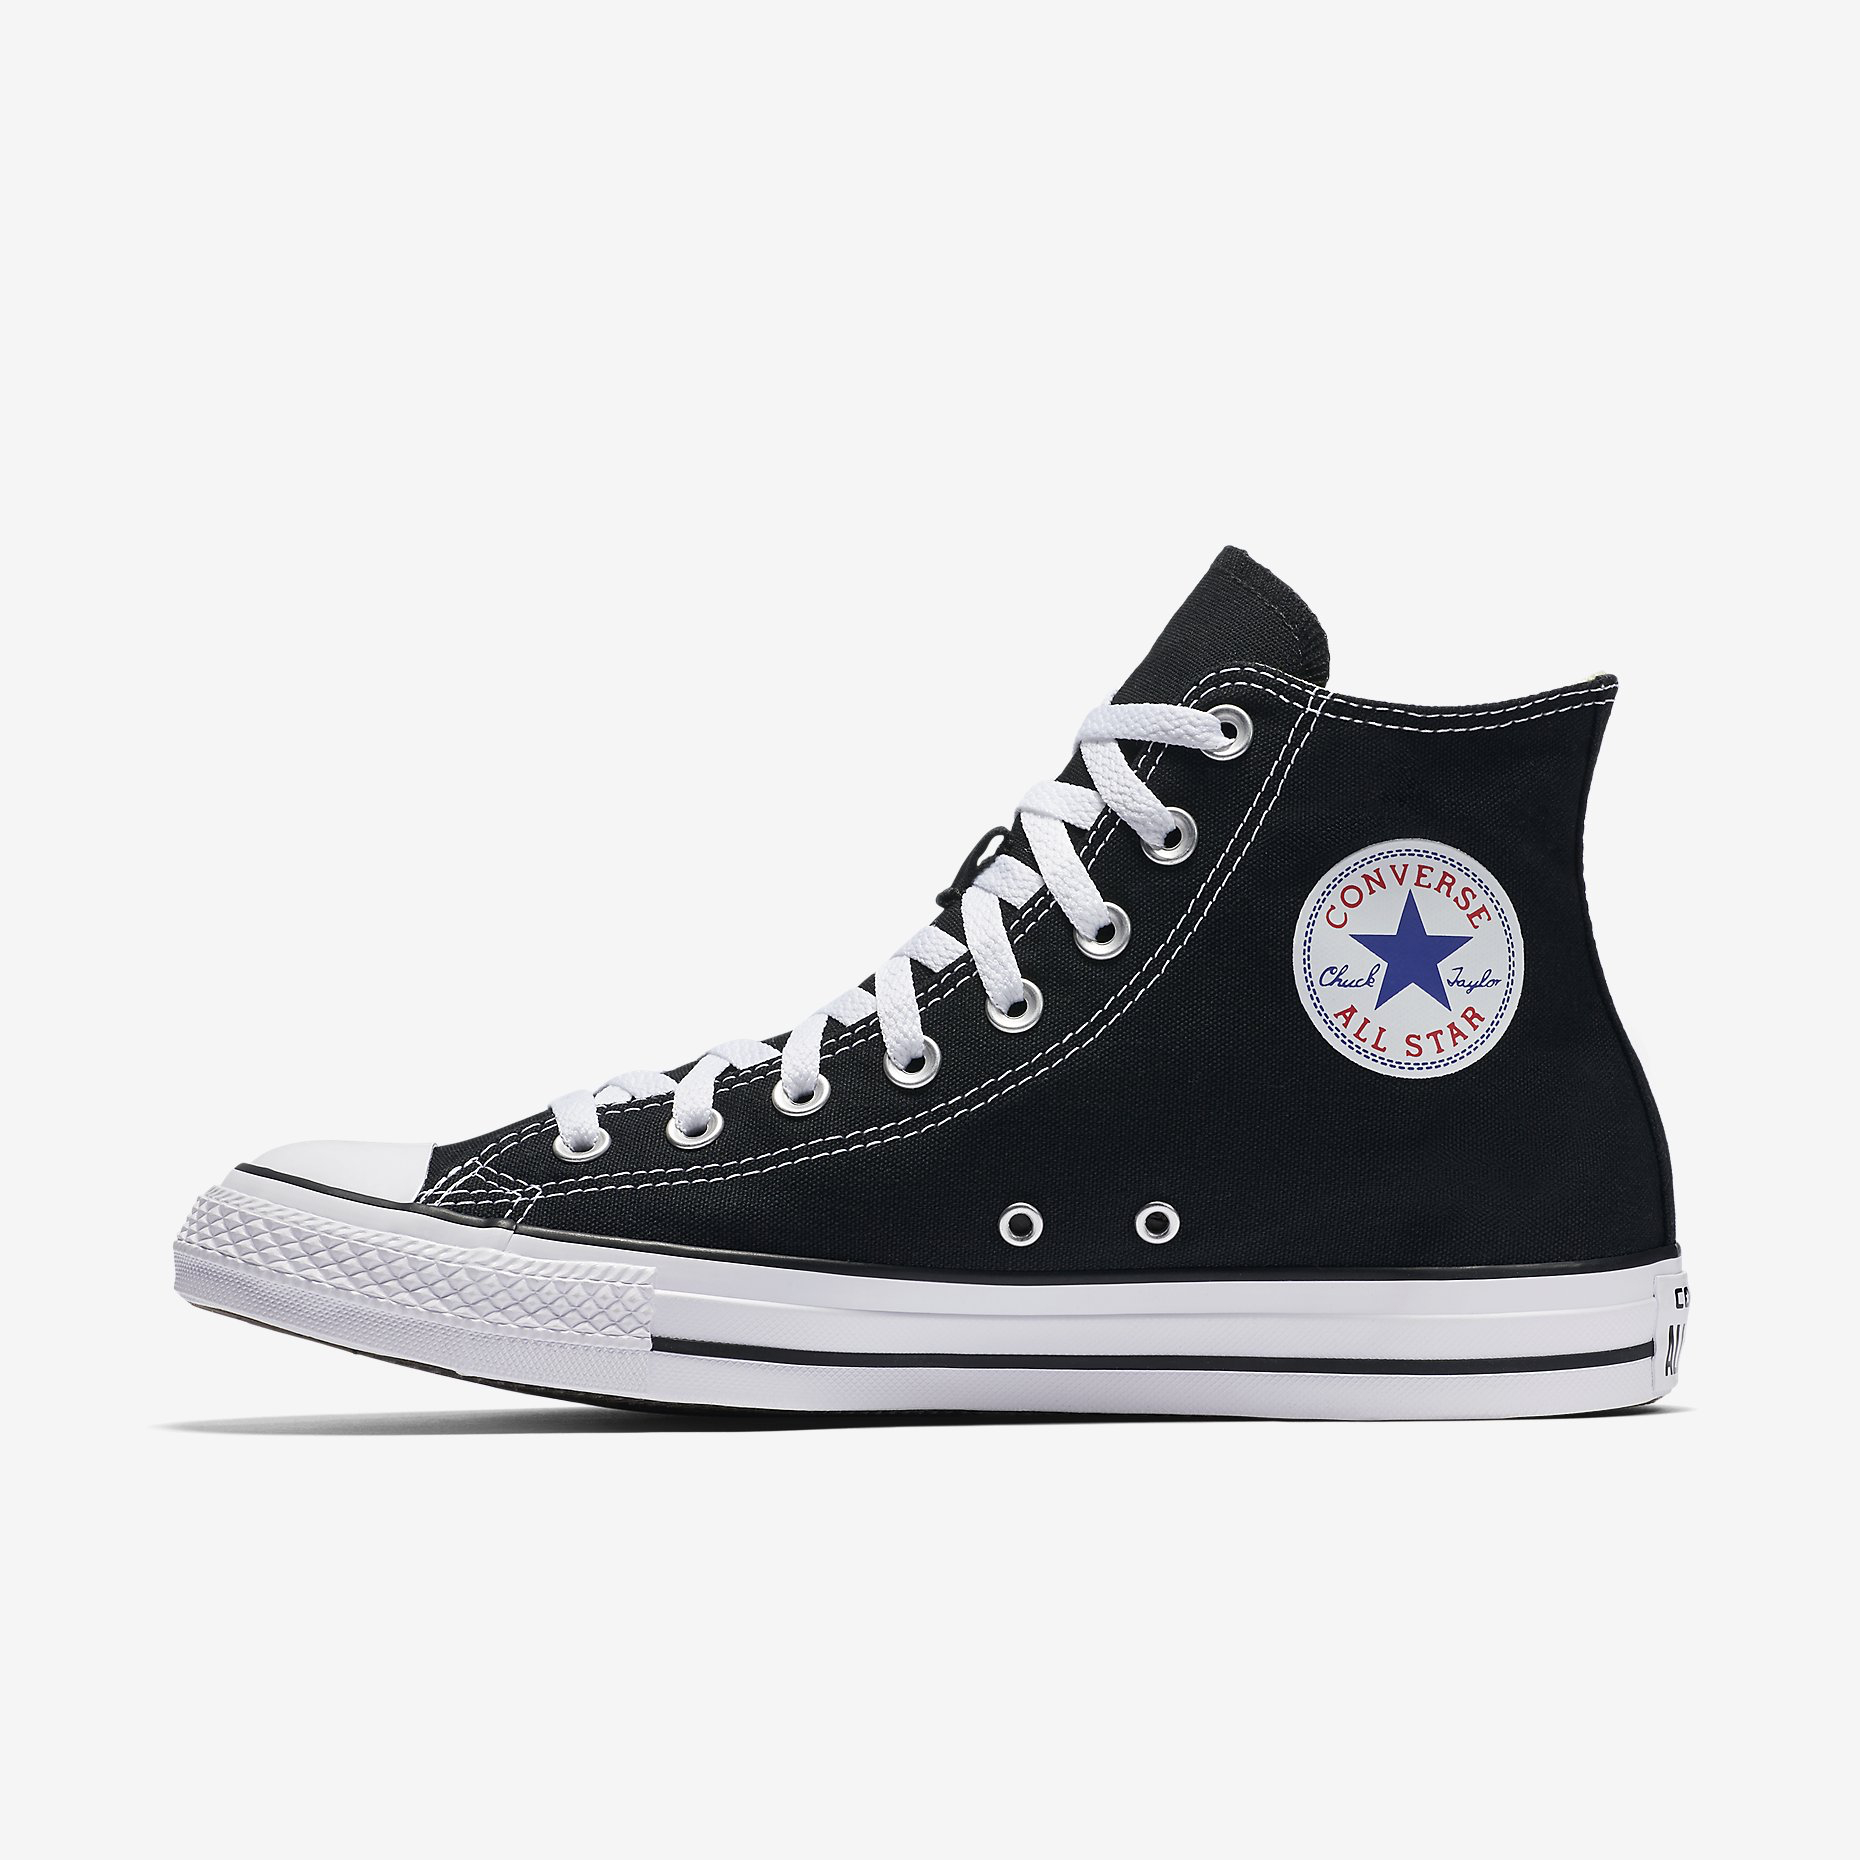 2473952f303596 Converse Chuck Taylor All Star Womens High Top Black in 2019 ...